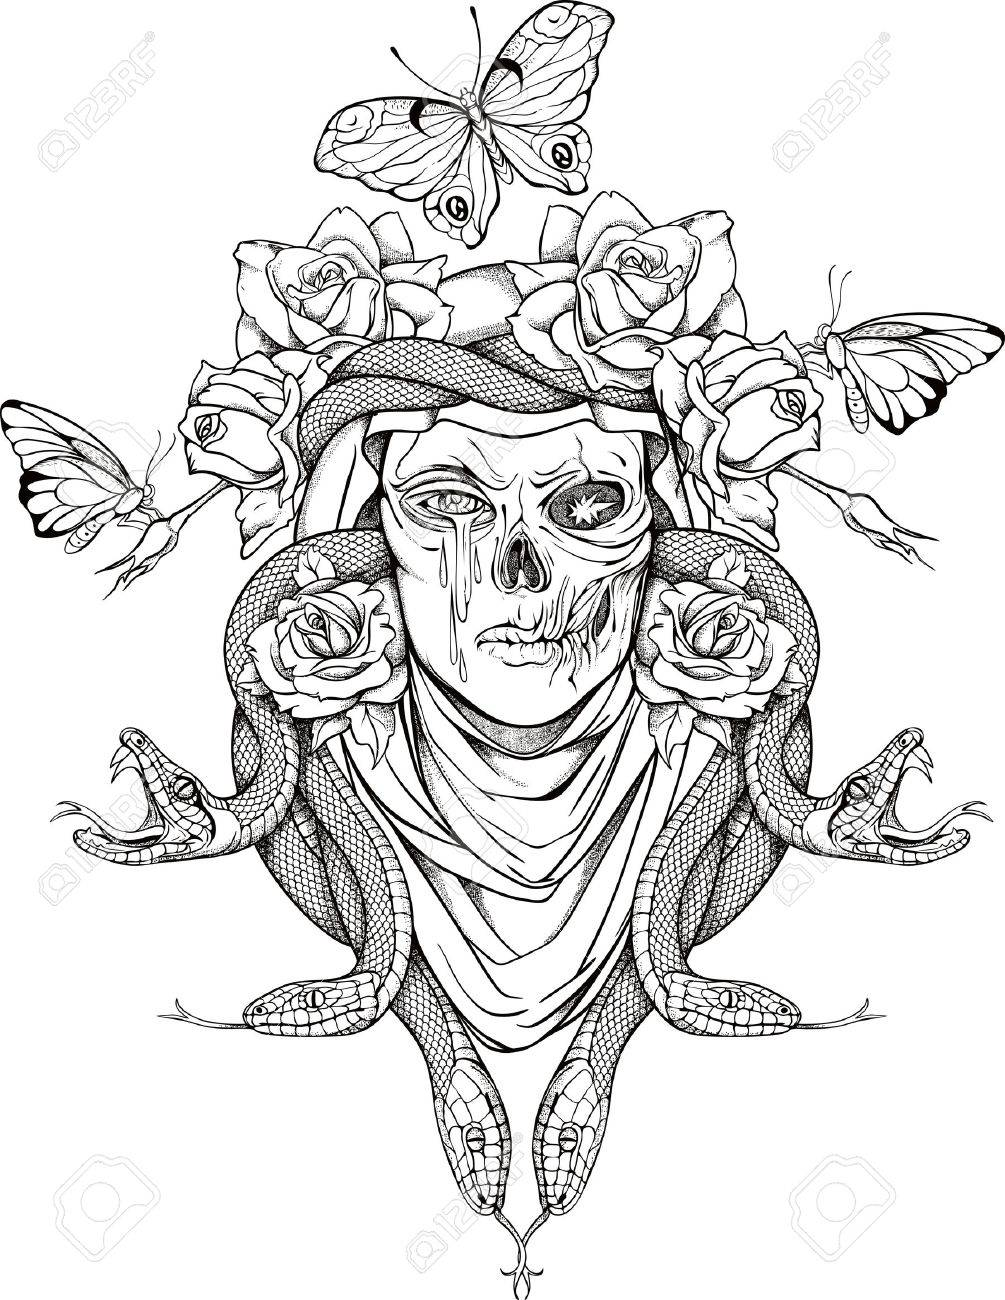 1005x1300 Illustration With Woman Skull, Snakes, Butterflies And Flowers